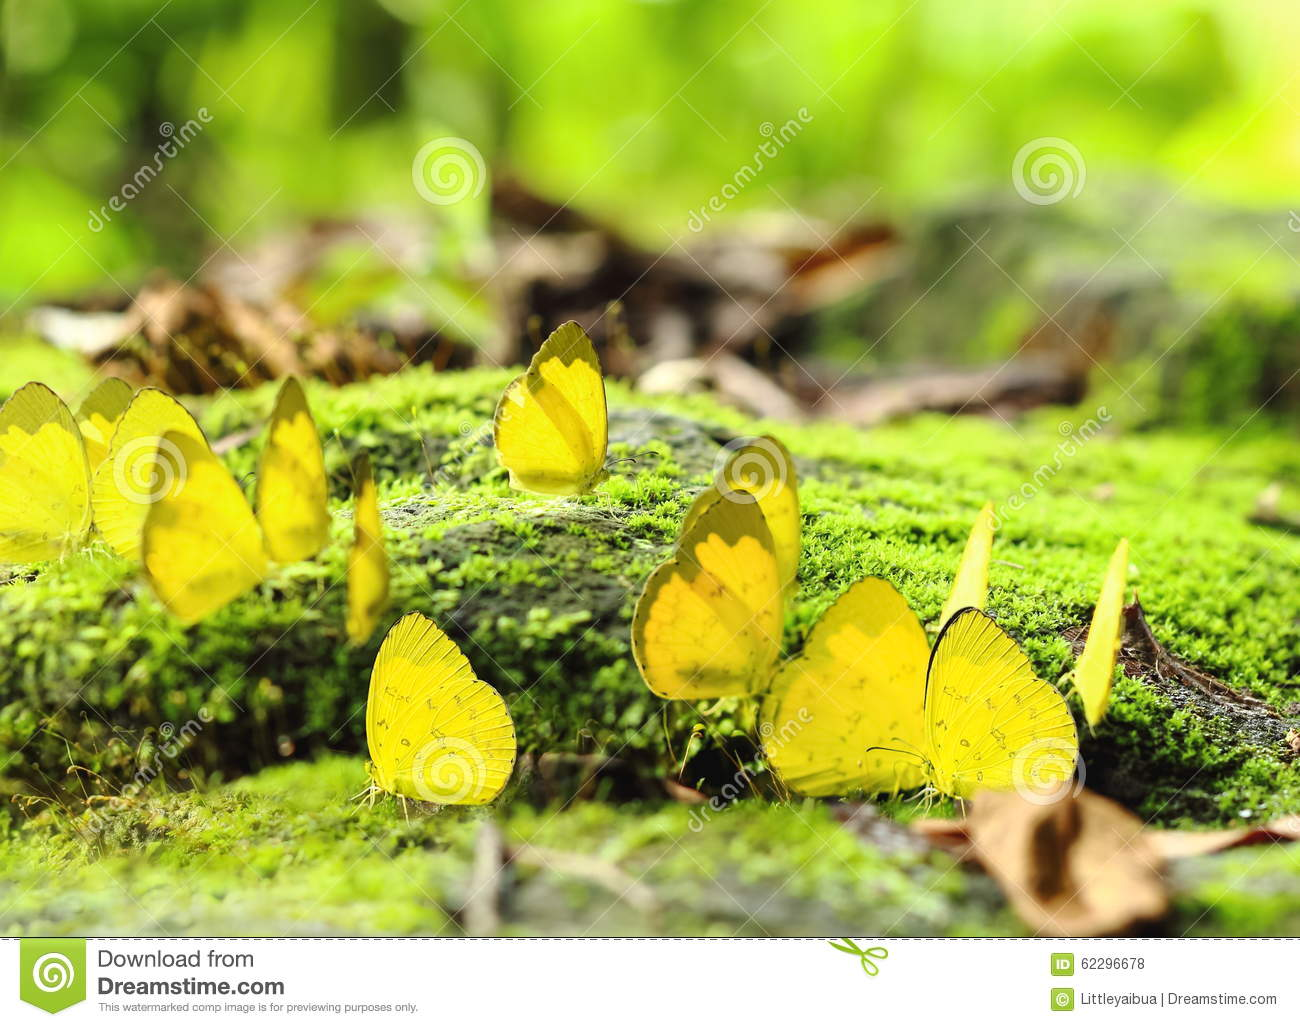 Free Blue and yellow butterfly Wallpaper - Download The Free Blue ...